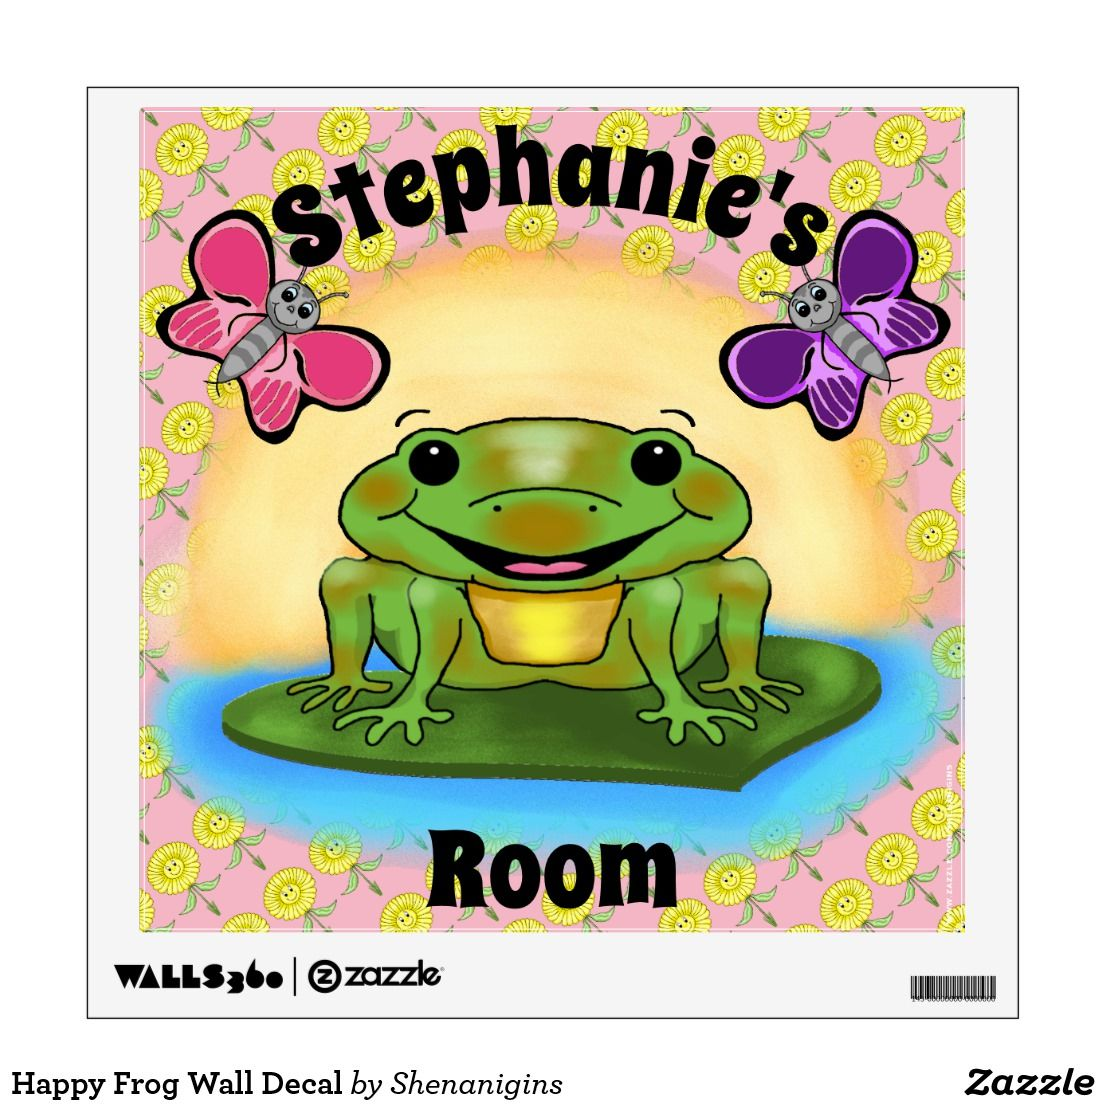 Happy Frog Wall Decal | Wall Decals | Pinterest | Wall decals ...